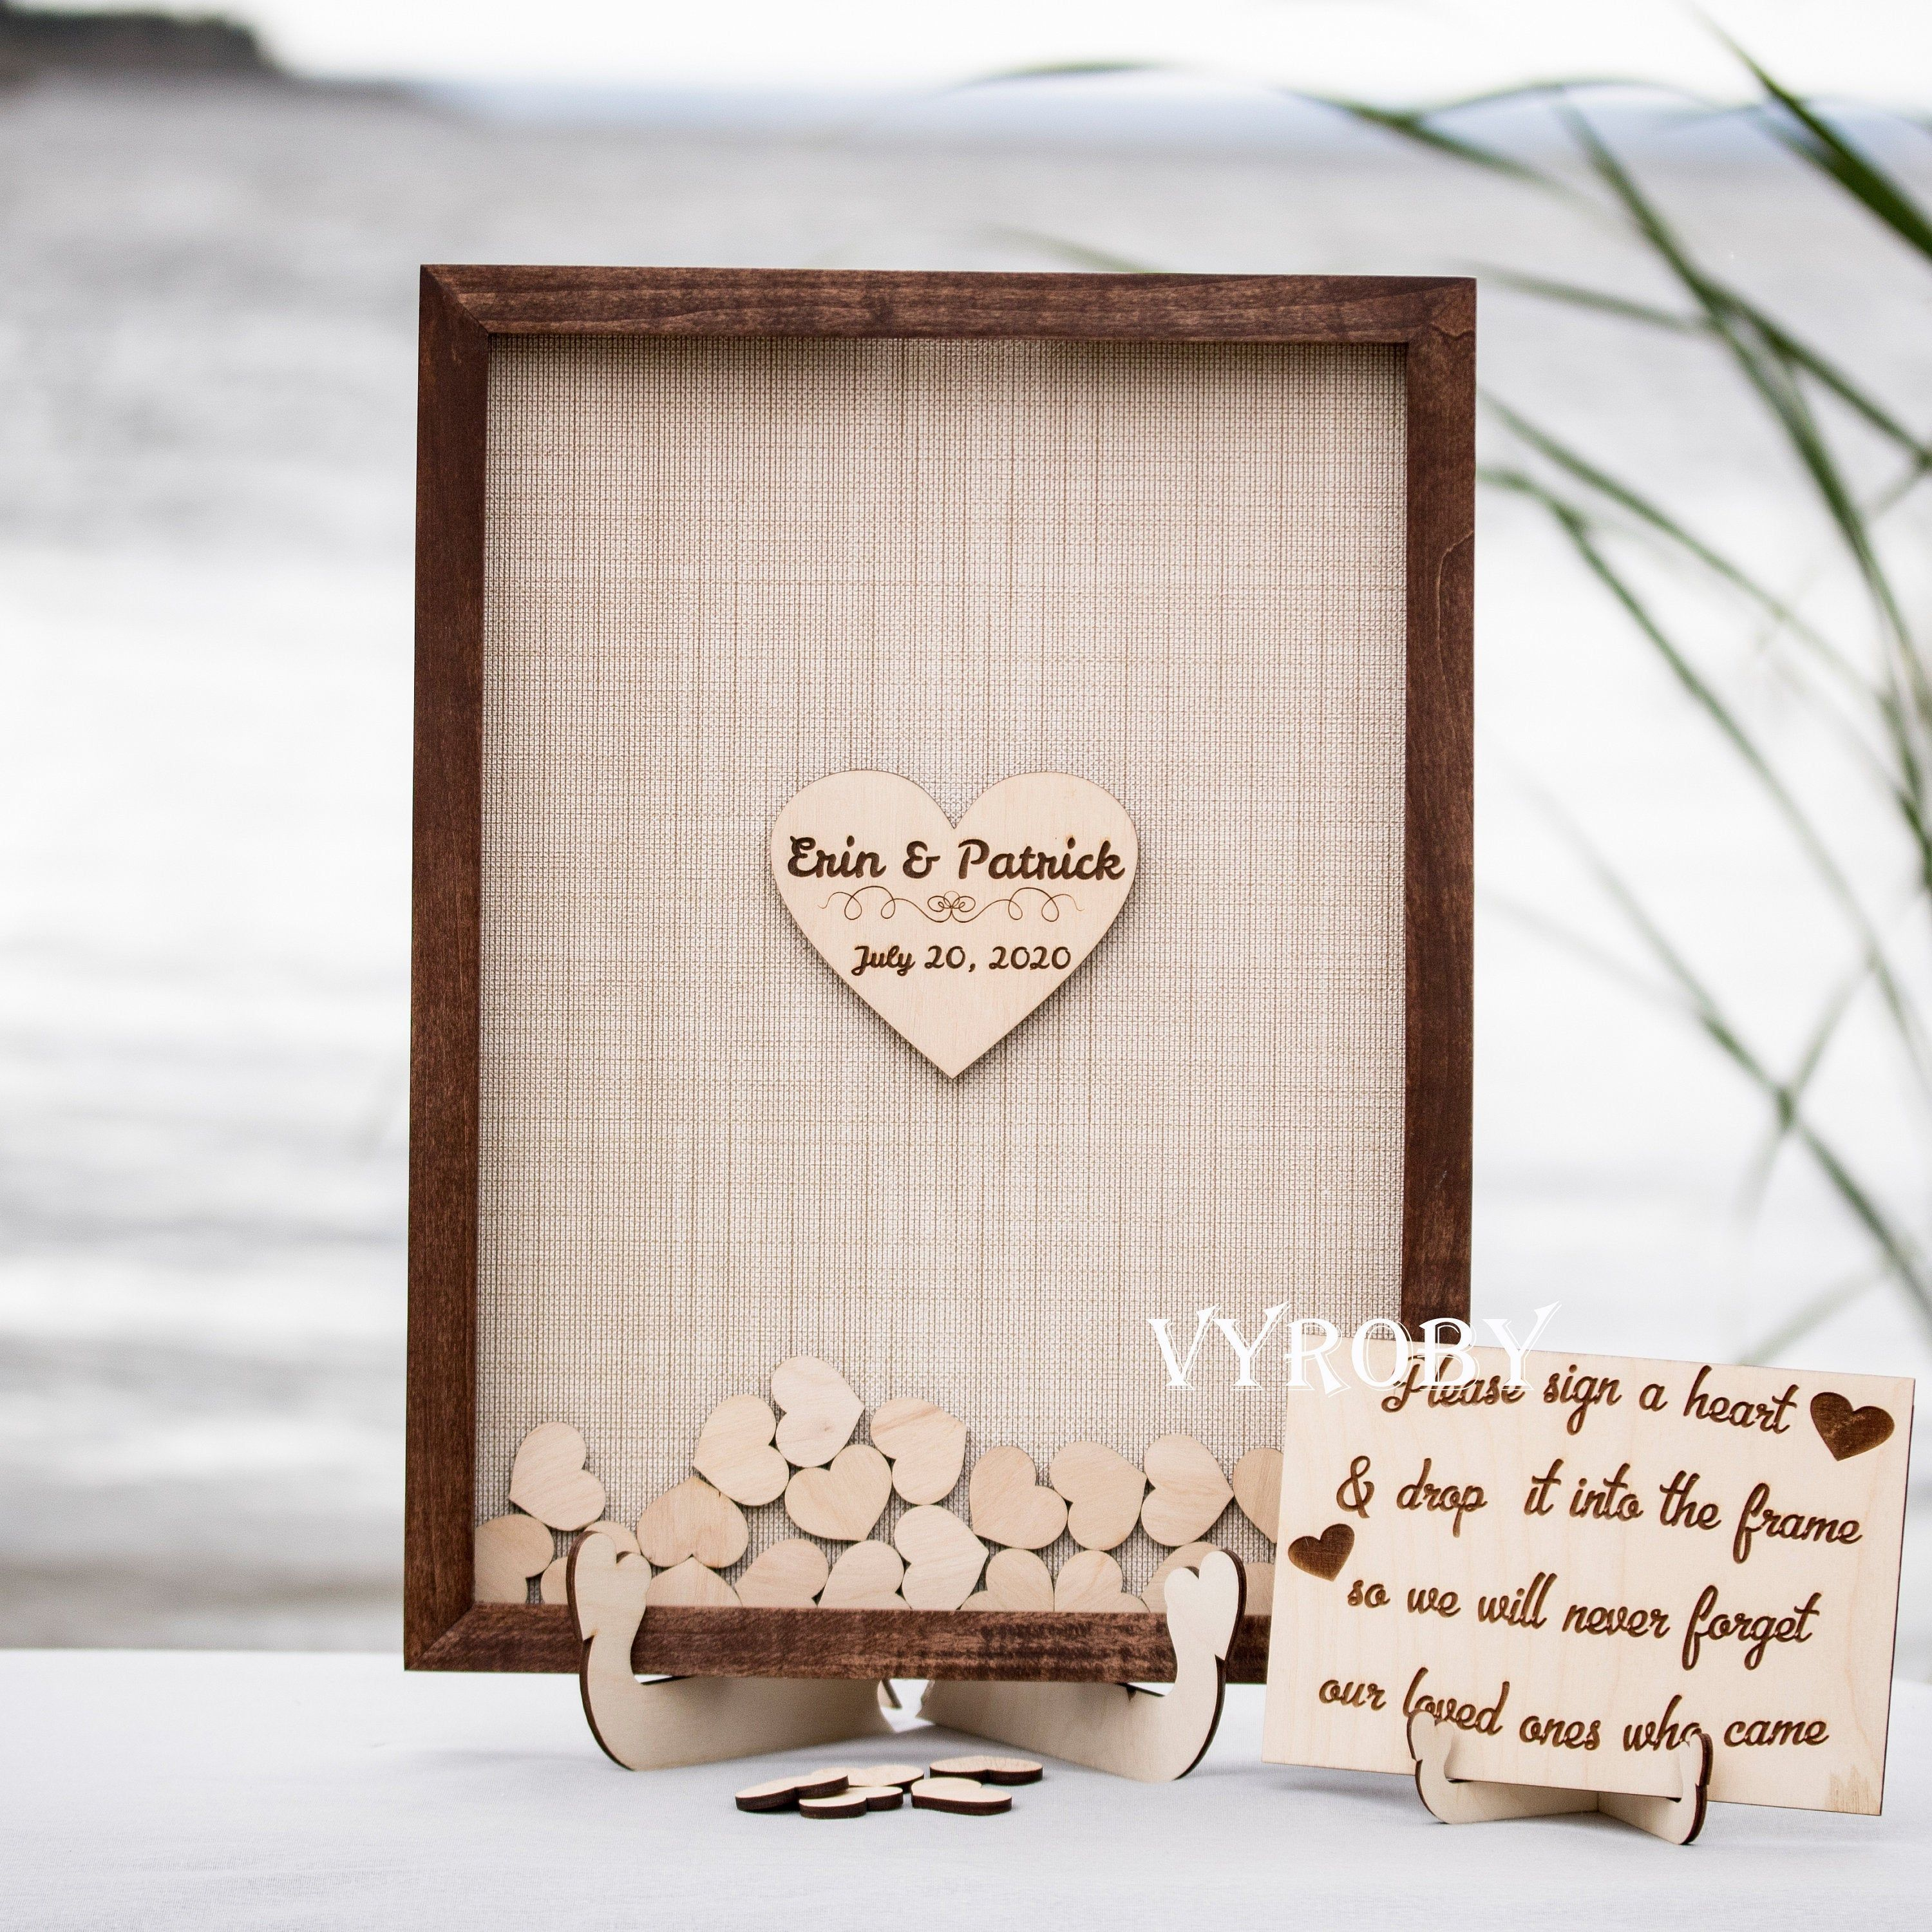 Rustic Wedding Guest Book Alternative Hearts Wedding Sign In Etsy In 2020 Drop Box Guest Book Personalized Wedding Guest Book Rustic Wedding Guest Book Alternative